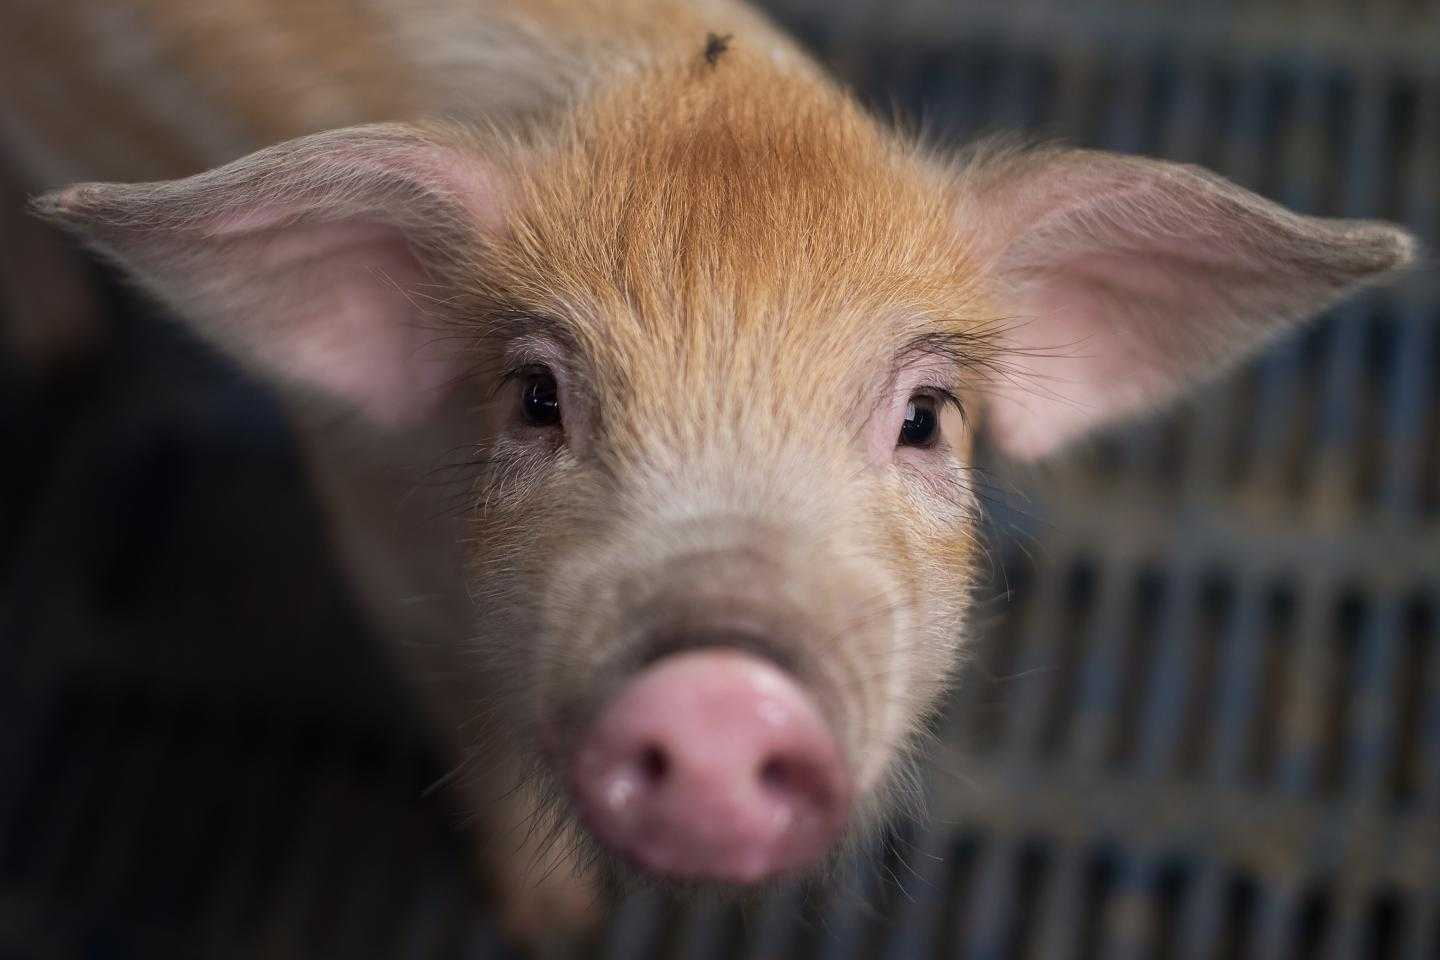 Porcine Deltacoronavirus: This deadly pig virus could jump to humans, scientists warn